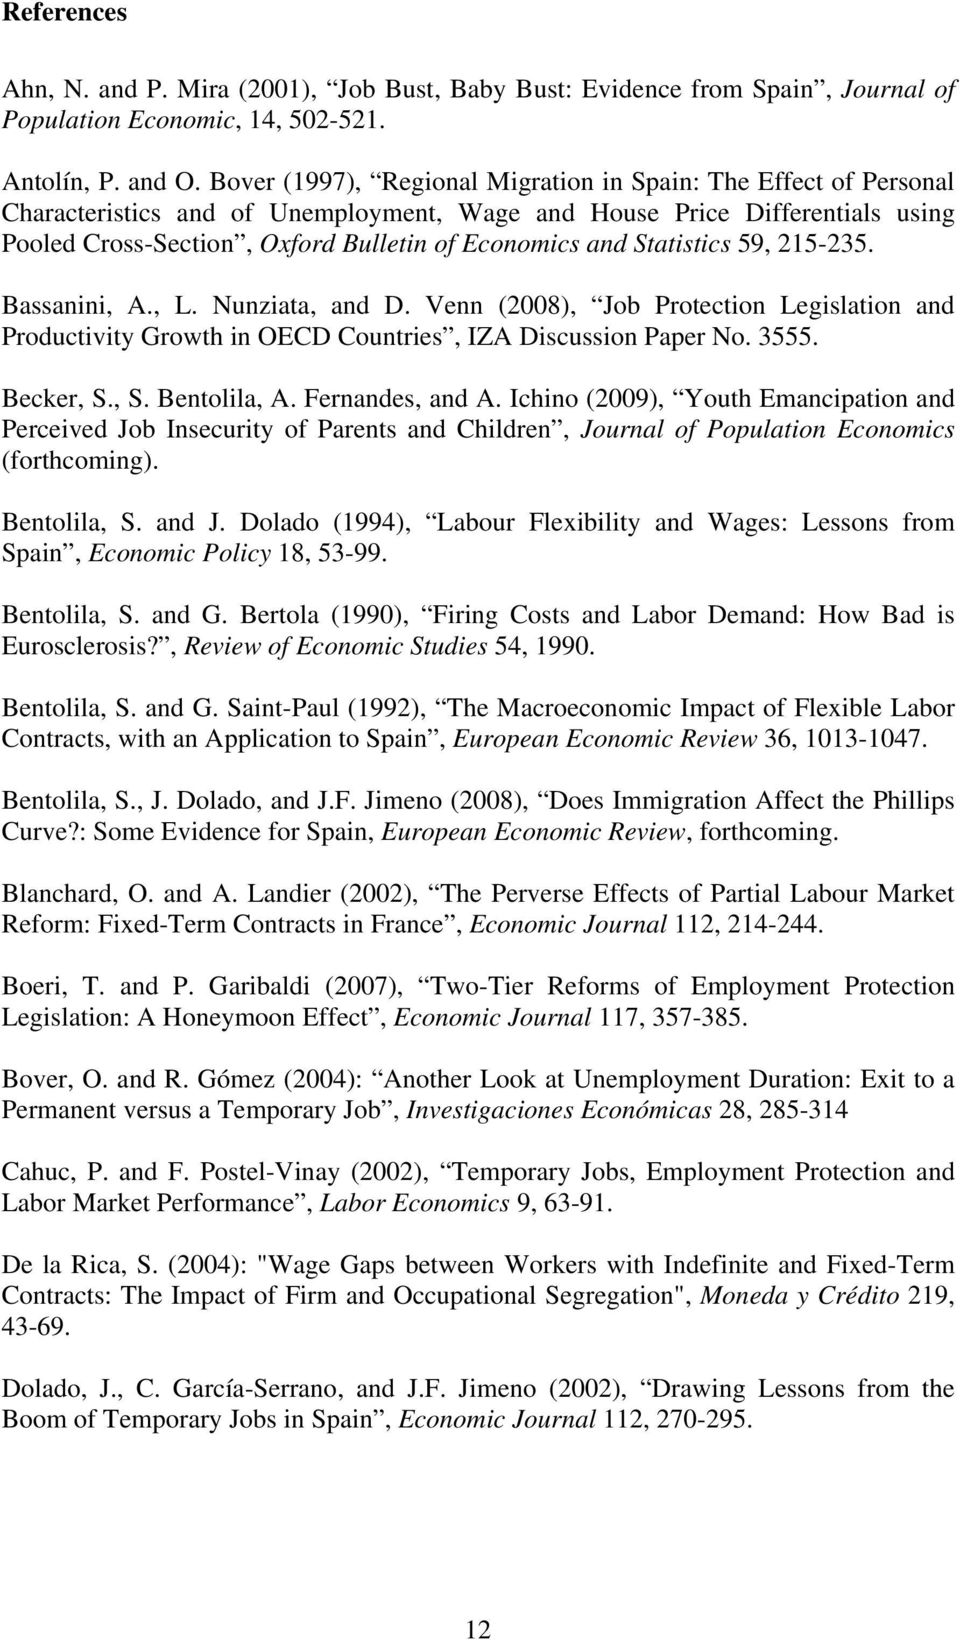 Statistics 59, 215-235. Bassanini, A., L. Nunziata, and D. Venn (2008), Job Protection Legislation and Productivity Growth in OECD Countries, IZA Discussion Paper No. 3555. Becker, S., S. Bentolila, A.